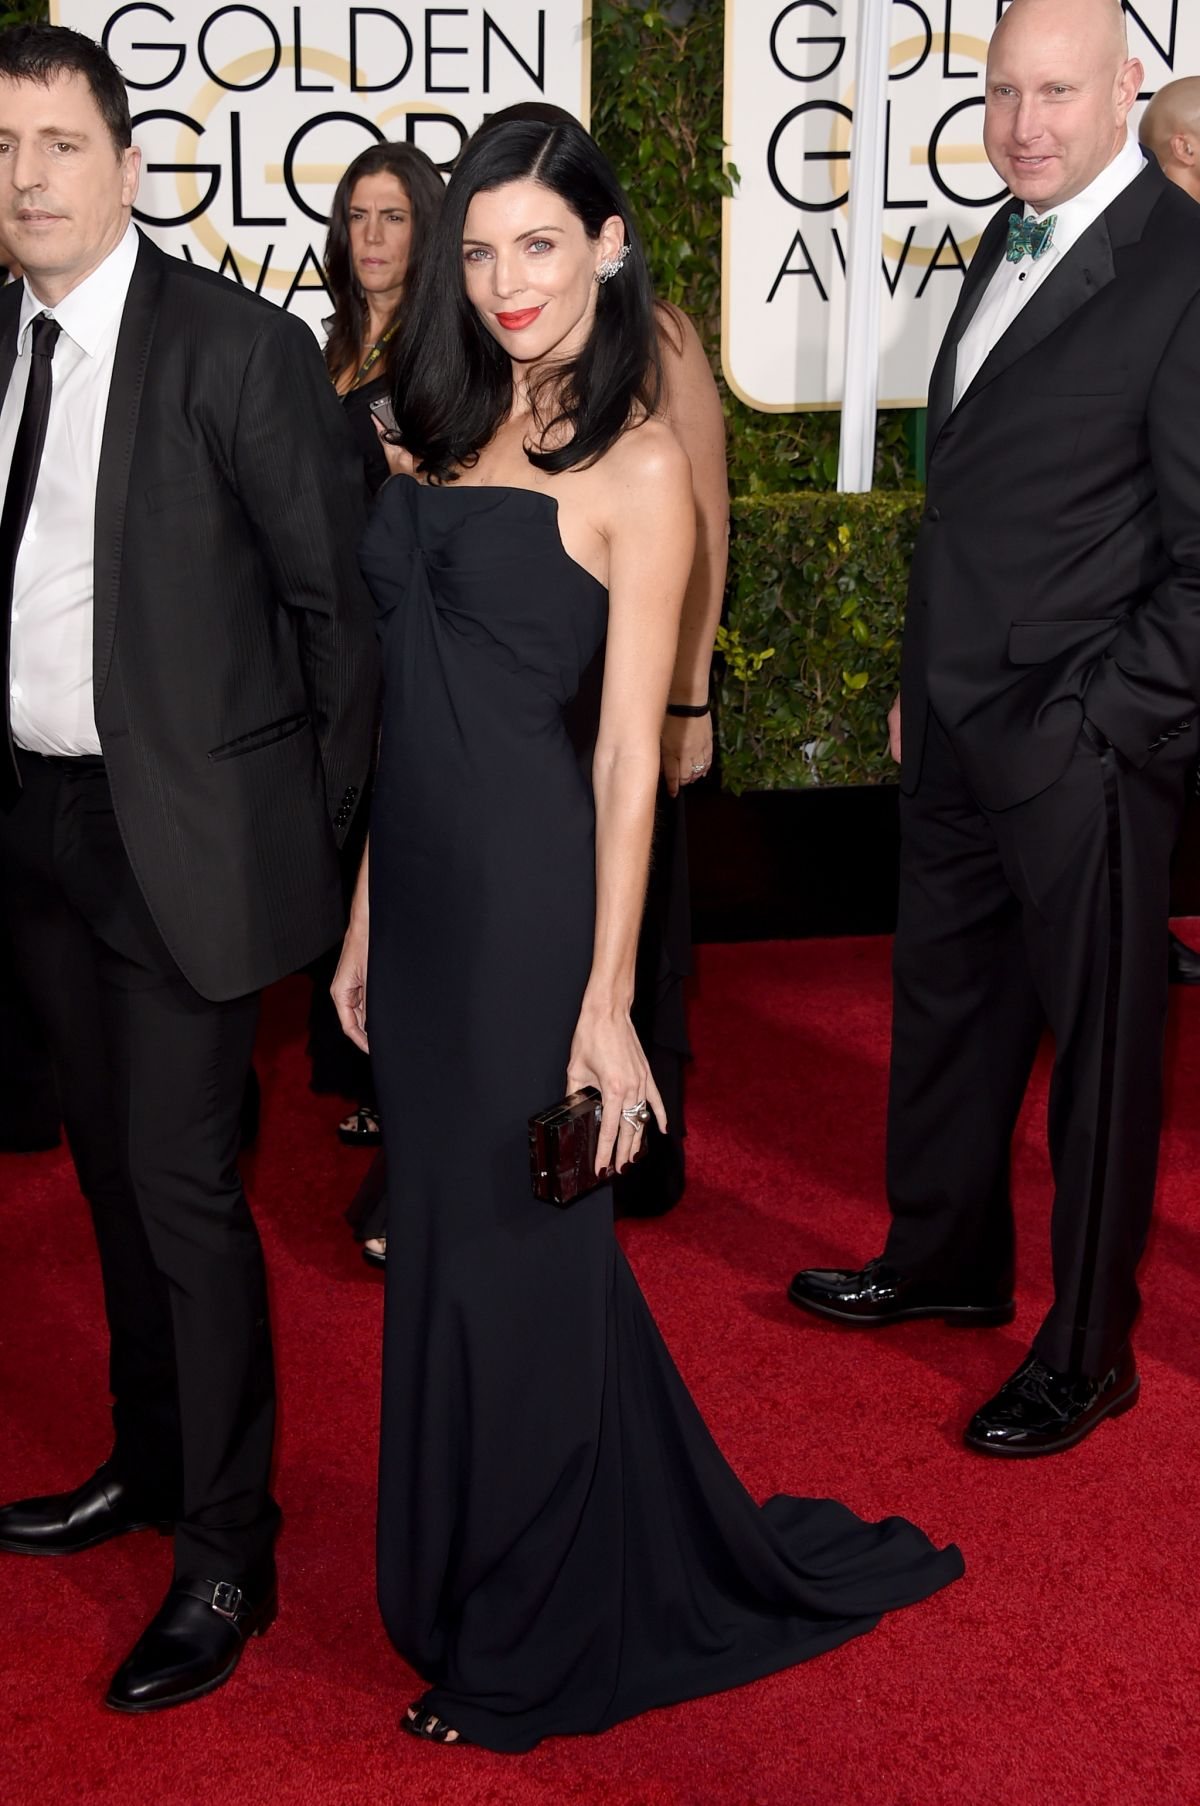 LIBERTY ROSS at 2015 Golden Globe Awards in Beverly Hills